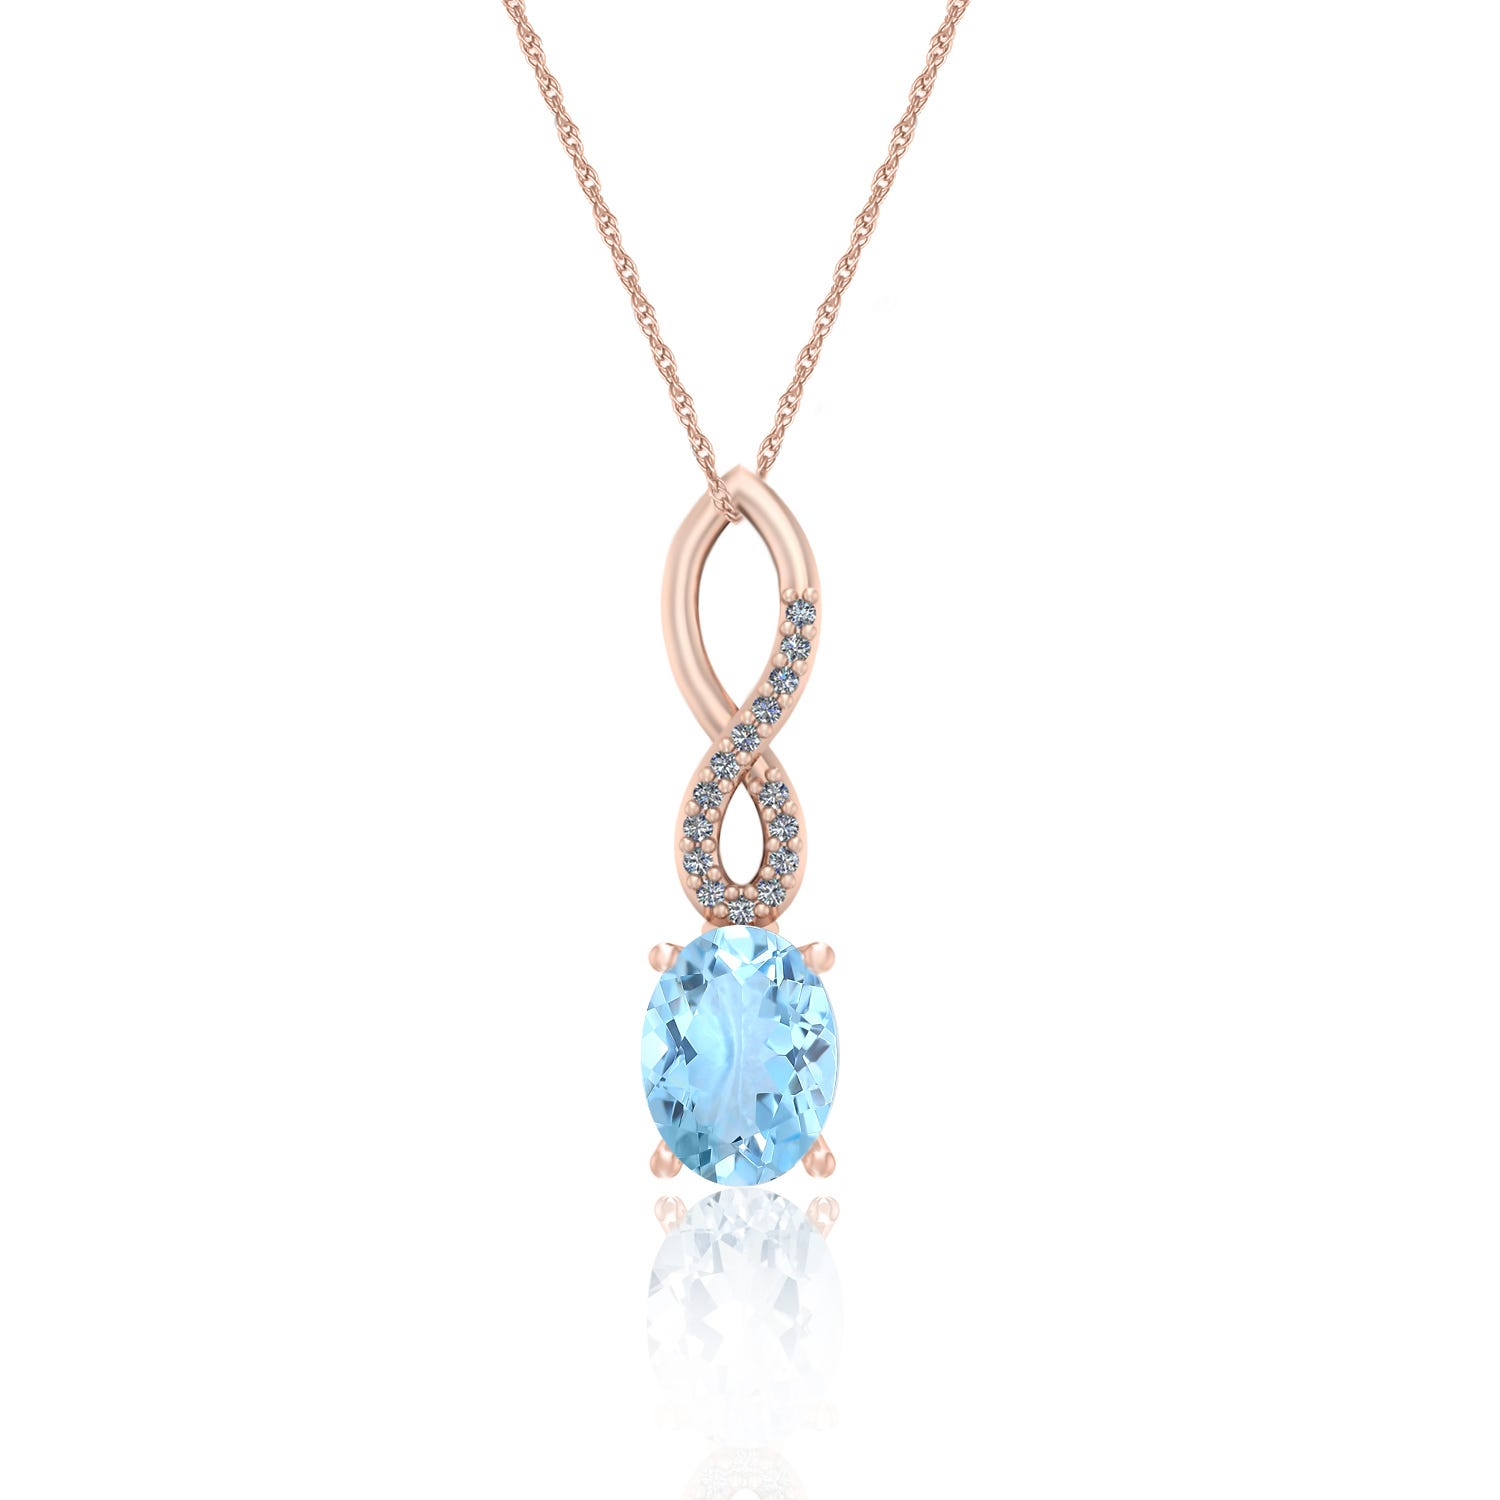 Oval Aquamarine & Diamond Pendant in 10k Rose Gold